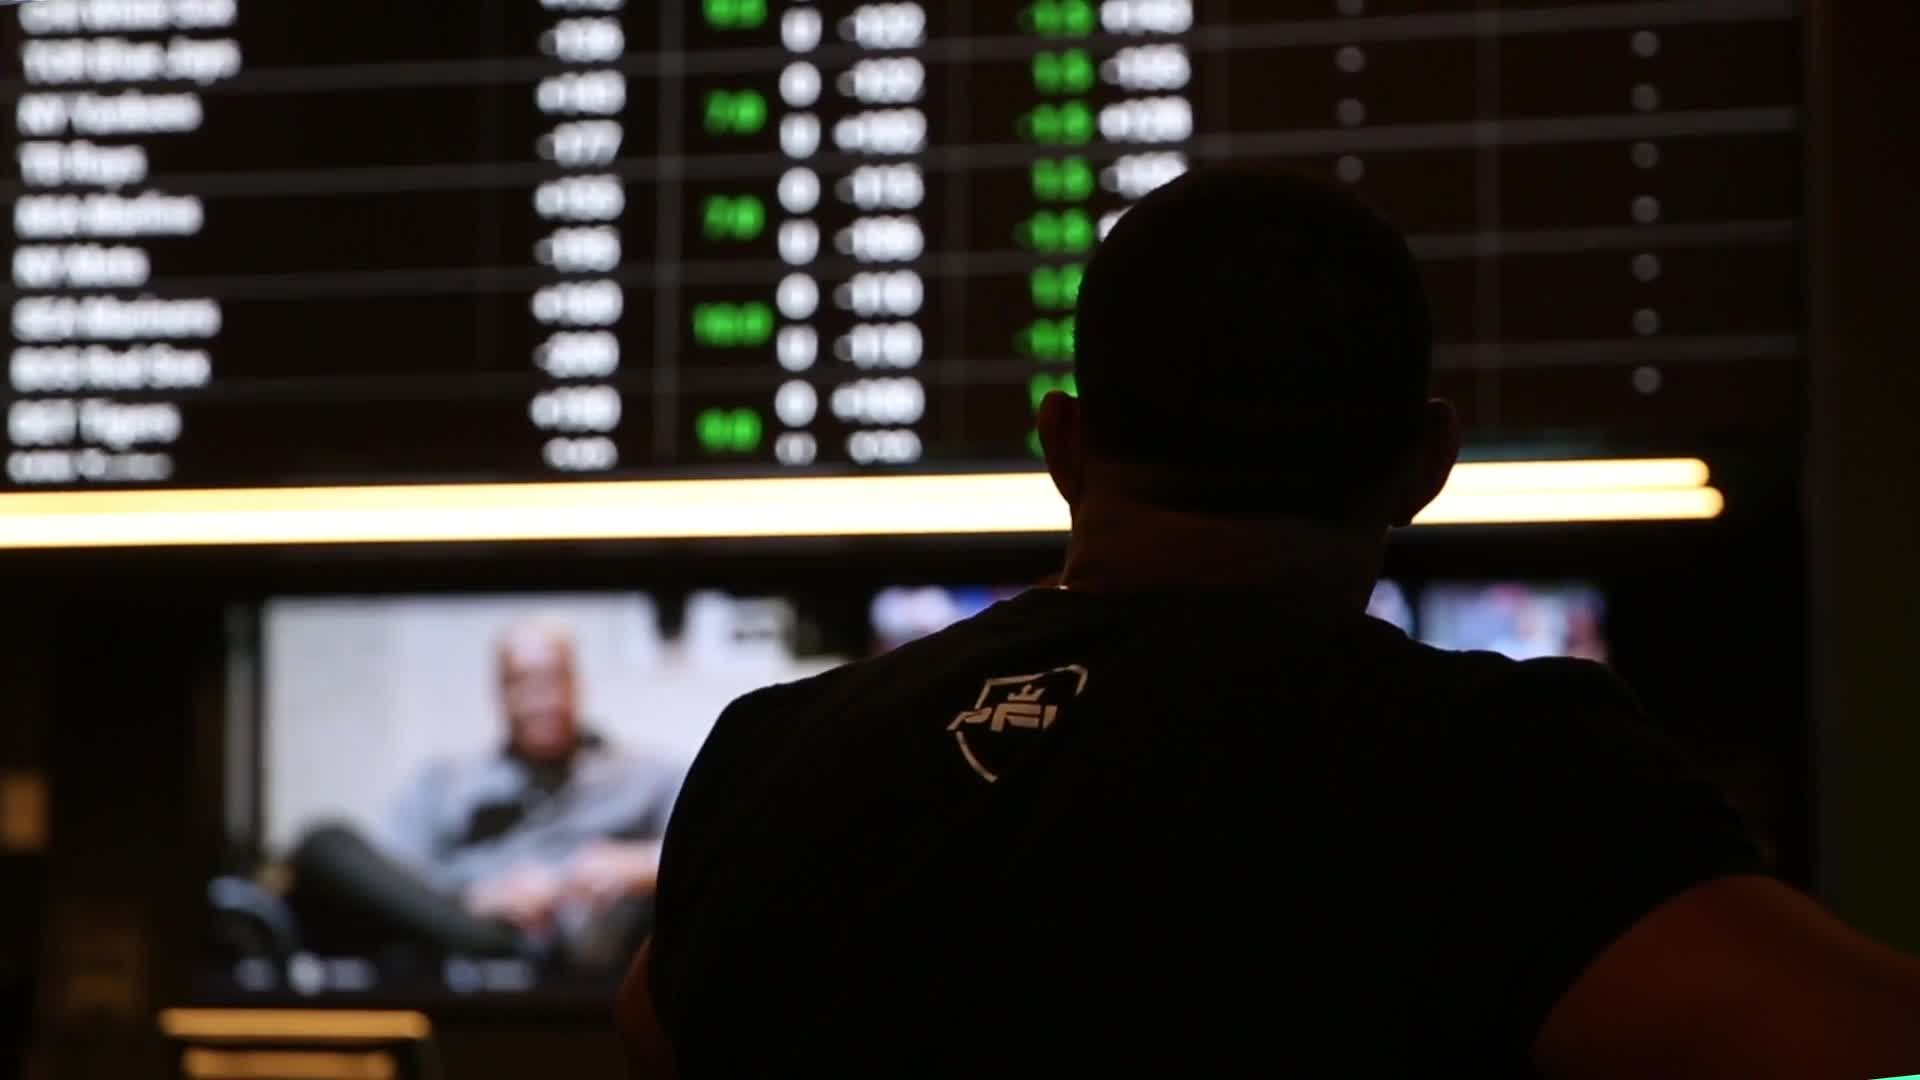 Sports betting became legal one year ago, and some experts